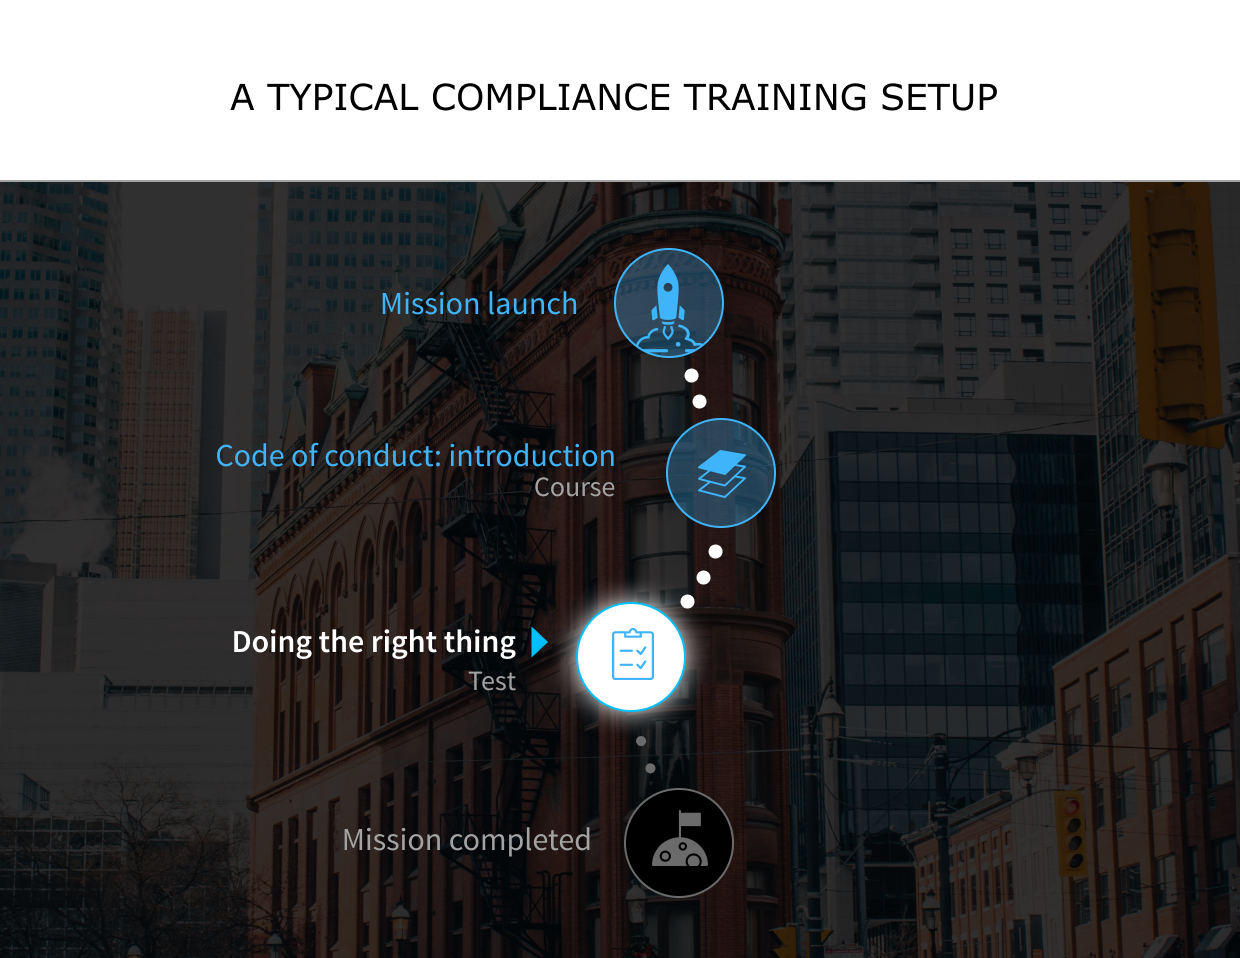 A typical compliance training setup with a course and a test